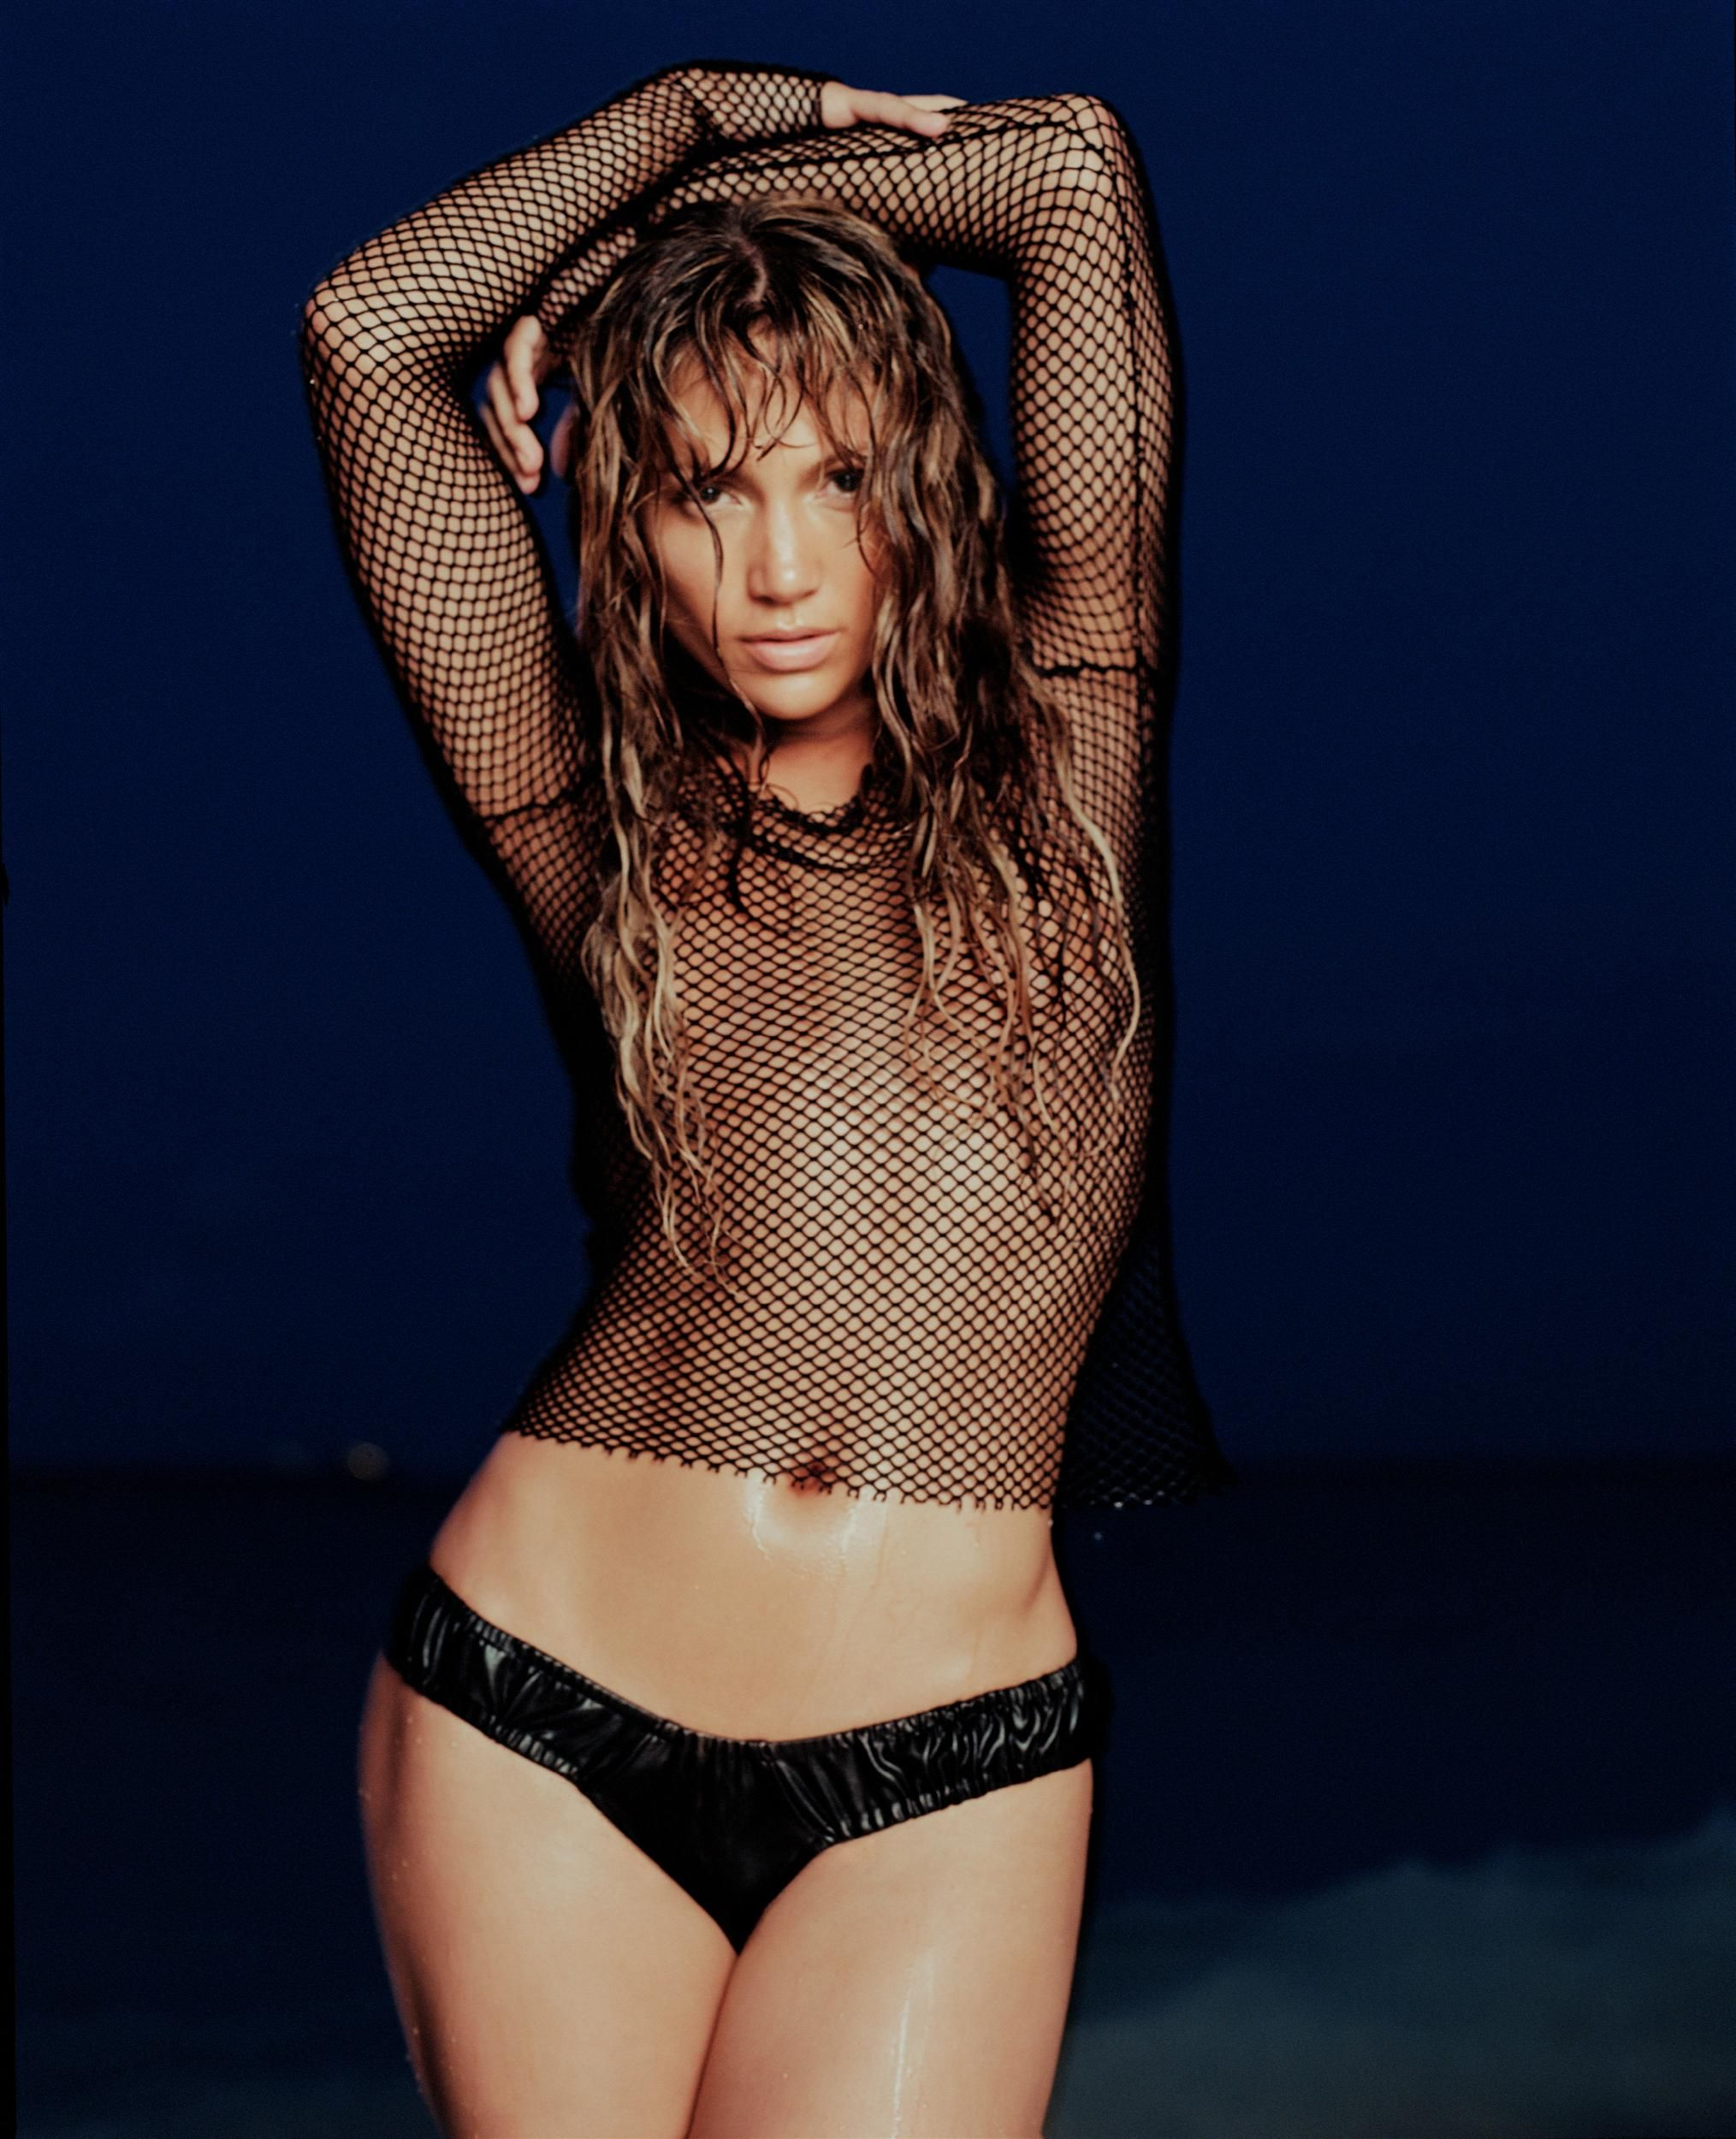 Hot! Jennifer Lopez ♥ | Jennifer lopez photos, Celebrities ...